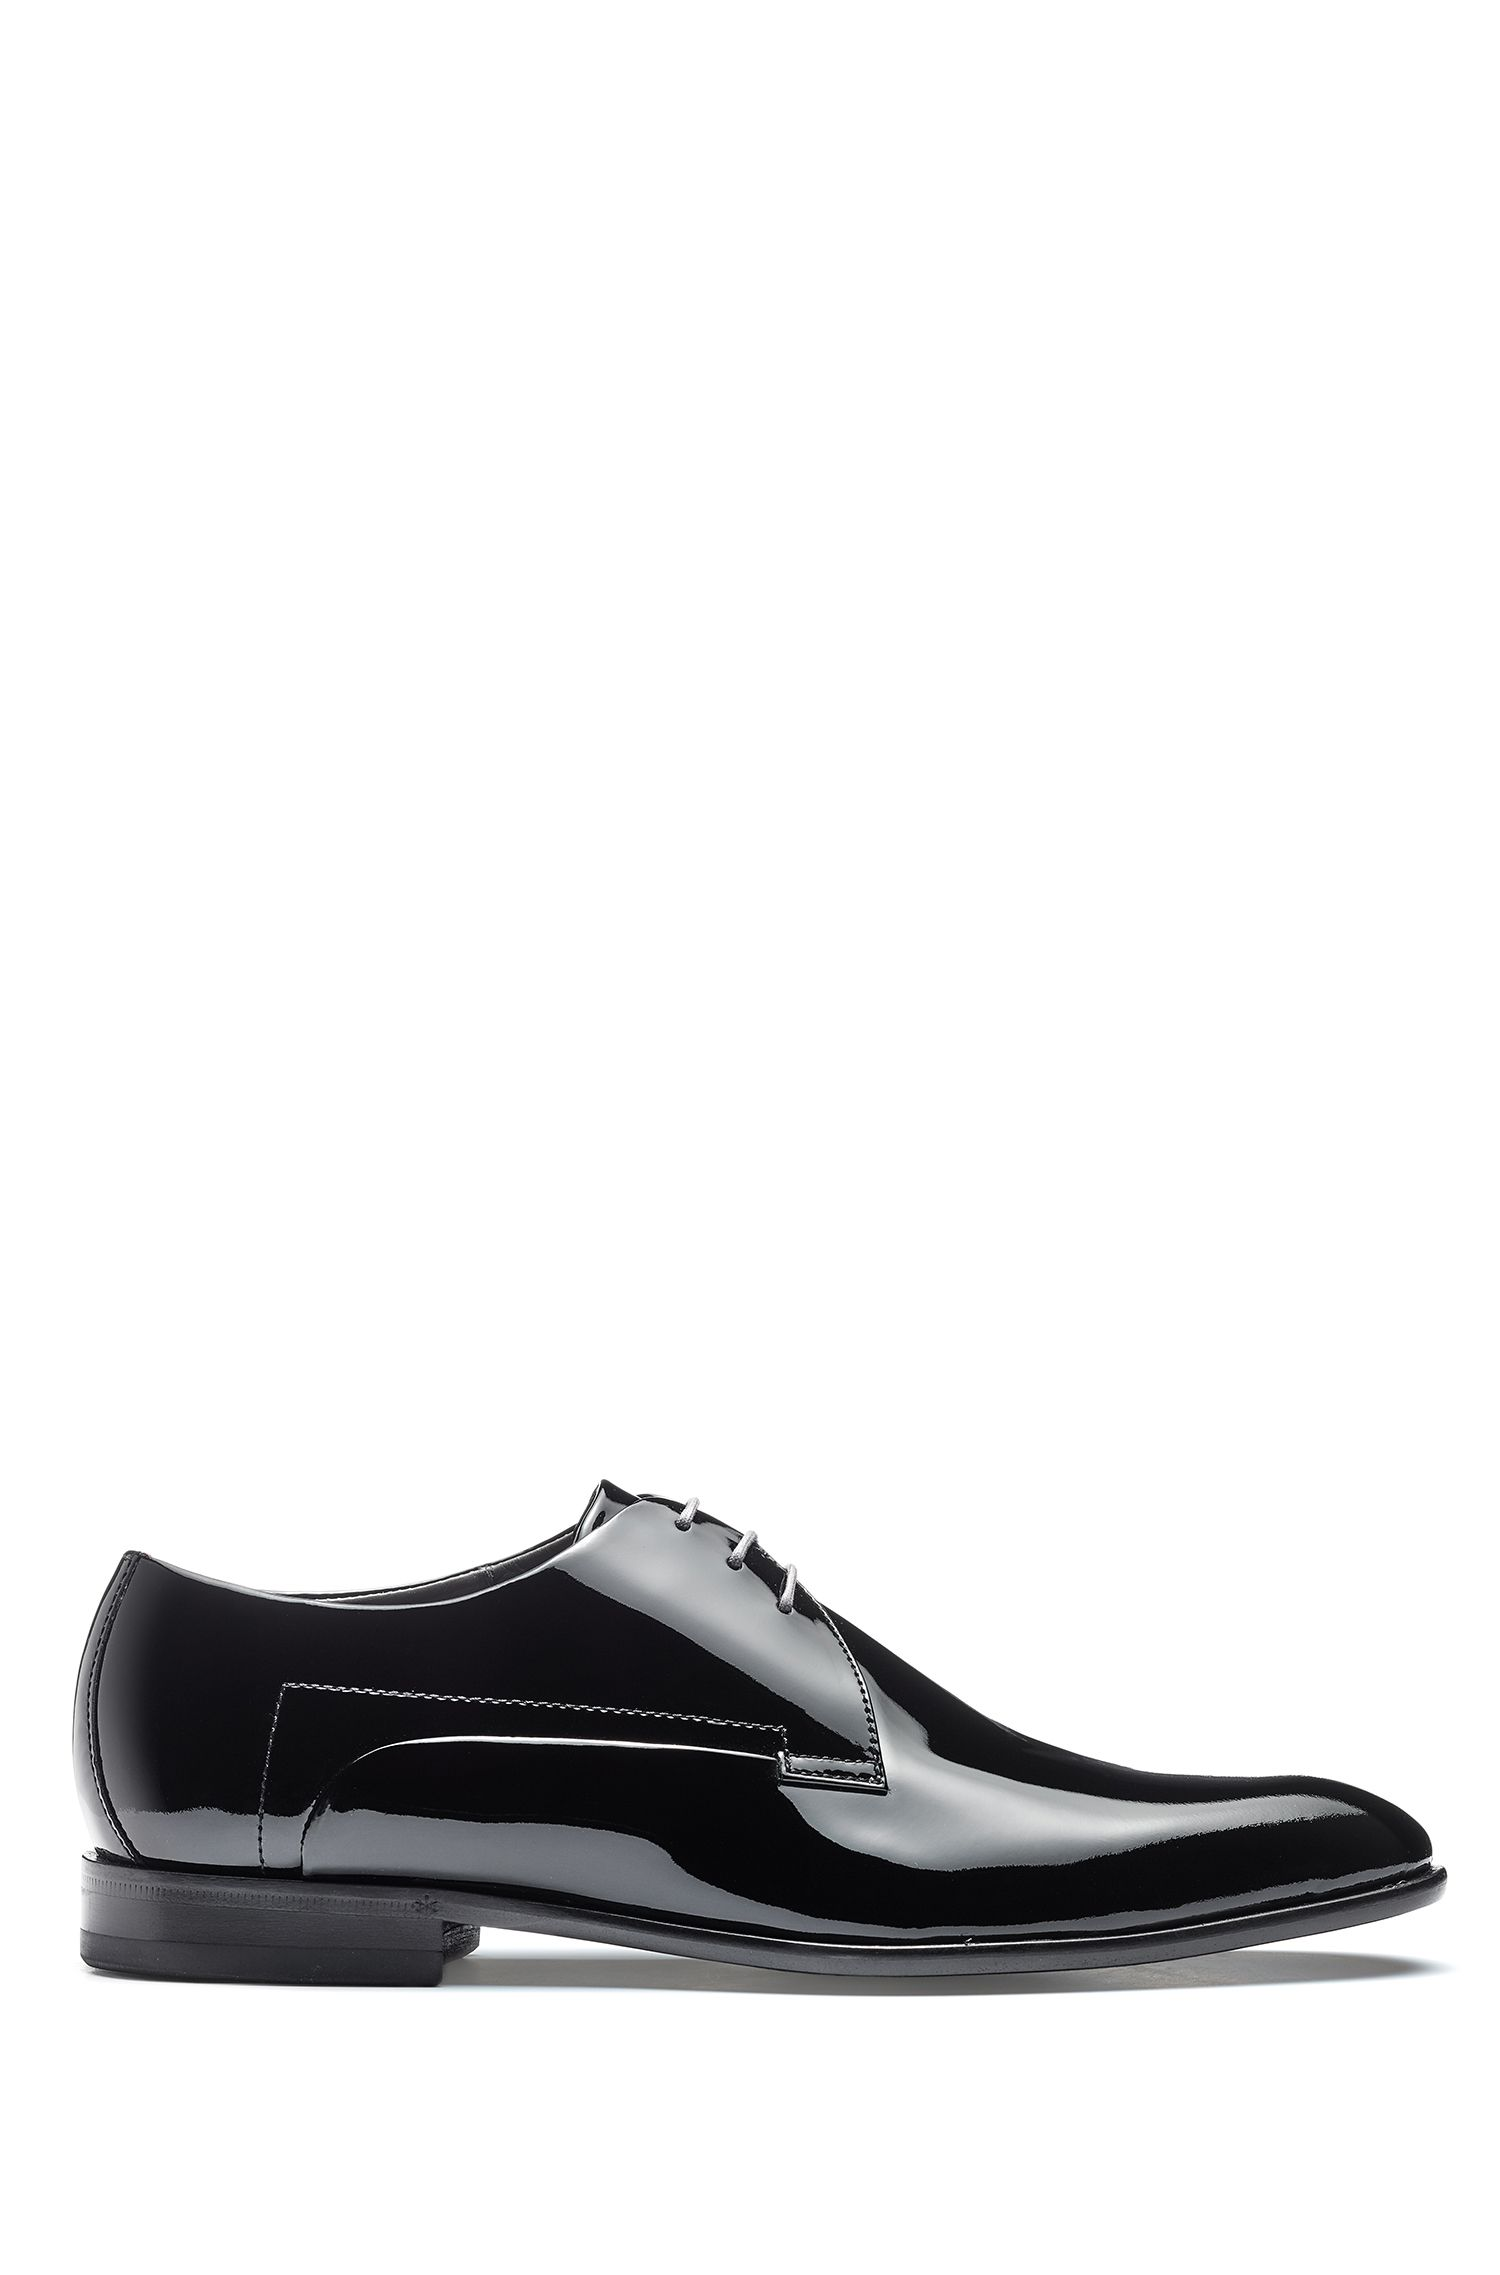 Derby shoes in patent leather with full-leather sole, Black